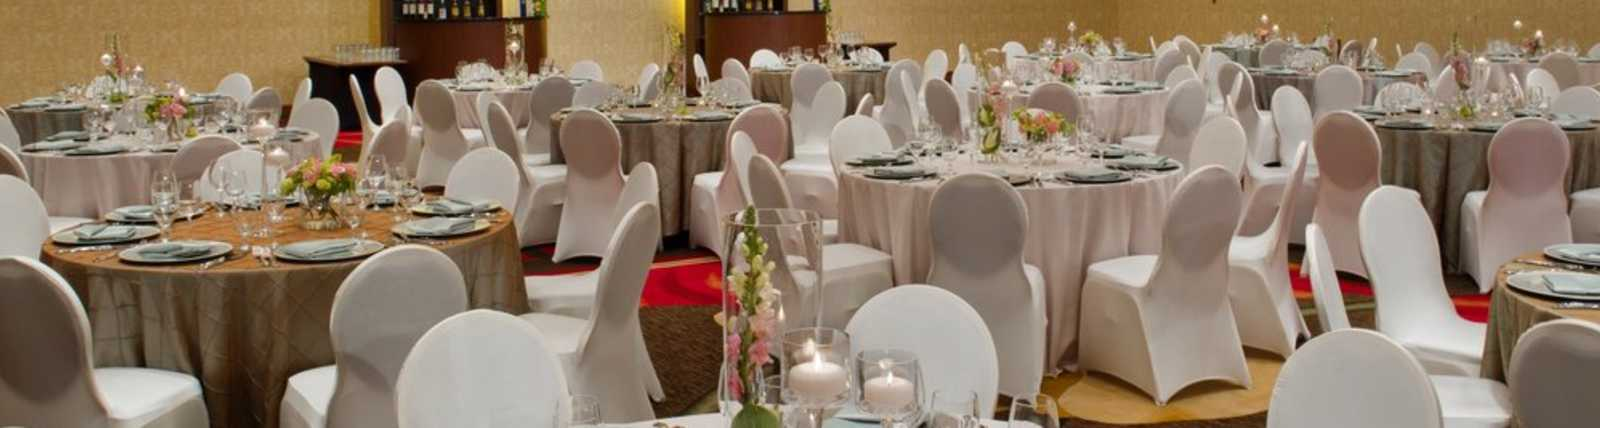 meeting-facility-DoubleTree_by_Hilton_Seattle_Airport_Meeting_Facility-7.jpg